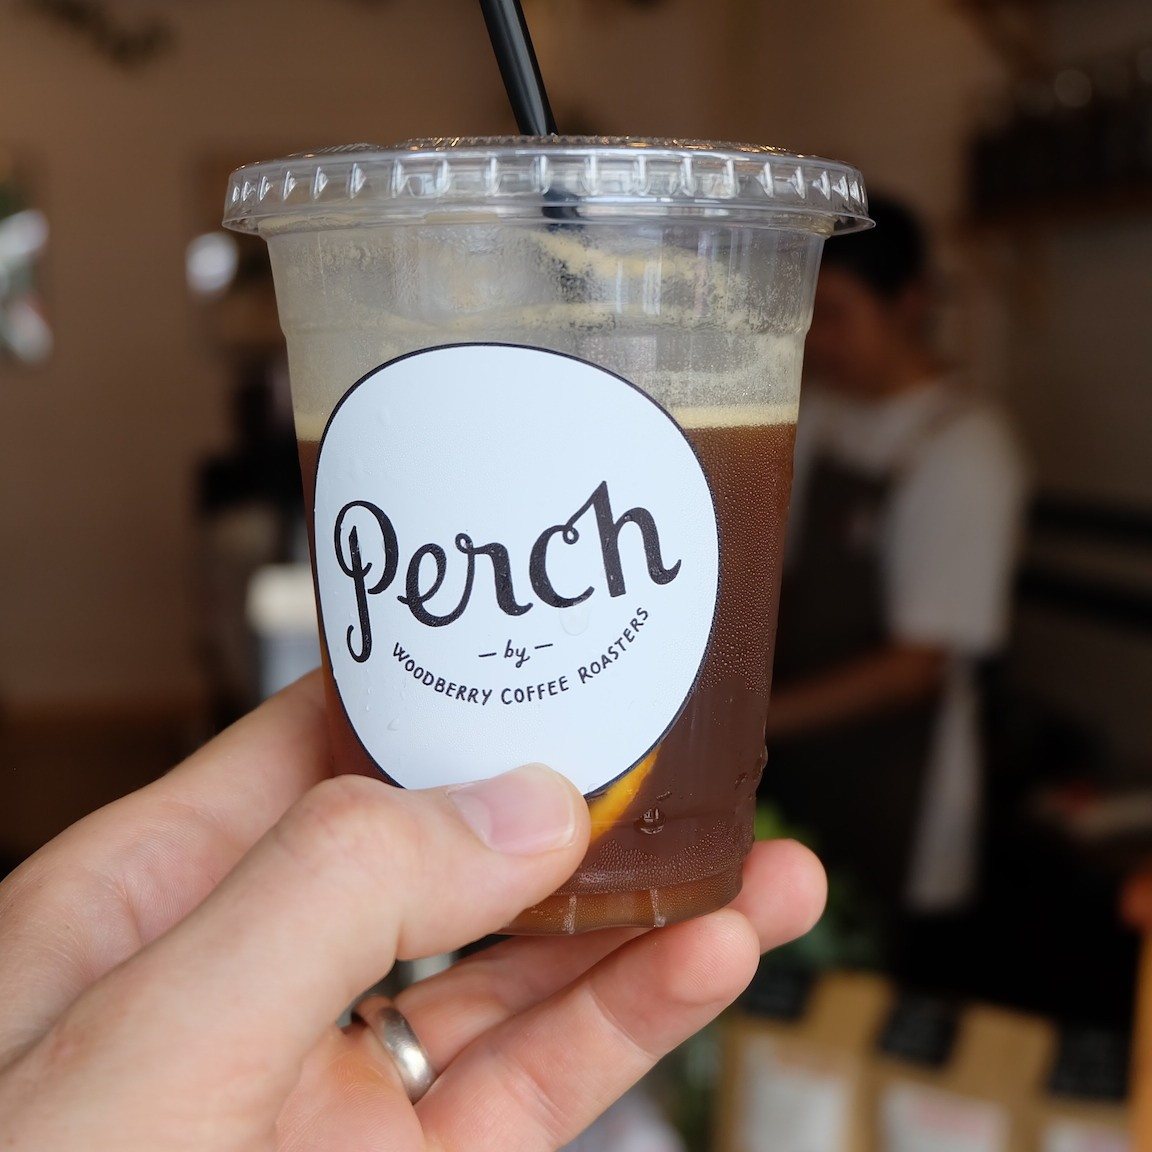 Hand Holding Iced to-go cup at Perch by Woodberry Coffee Roasters Tokyo Japan